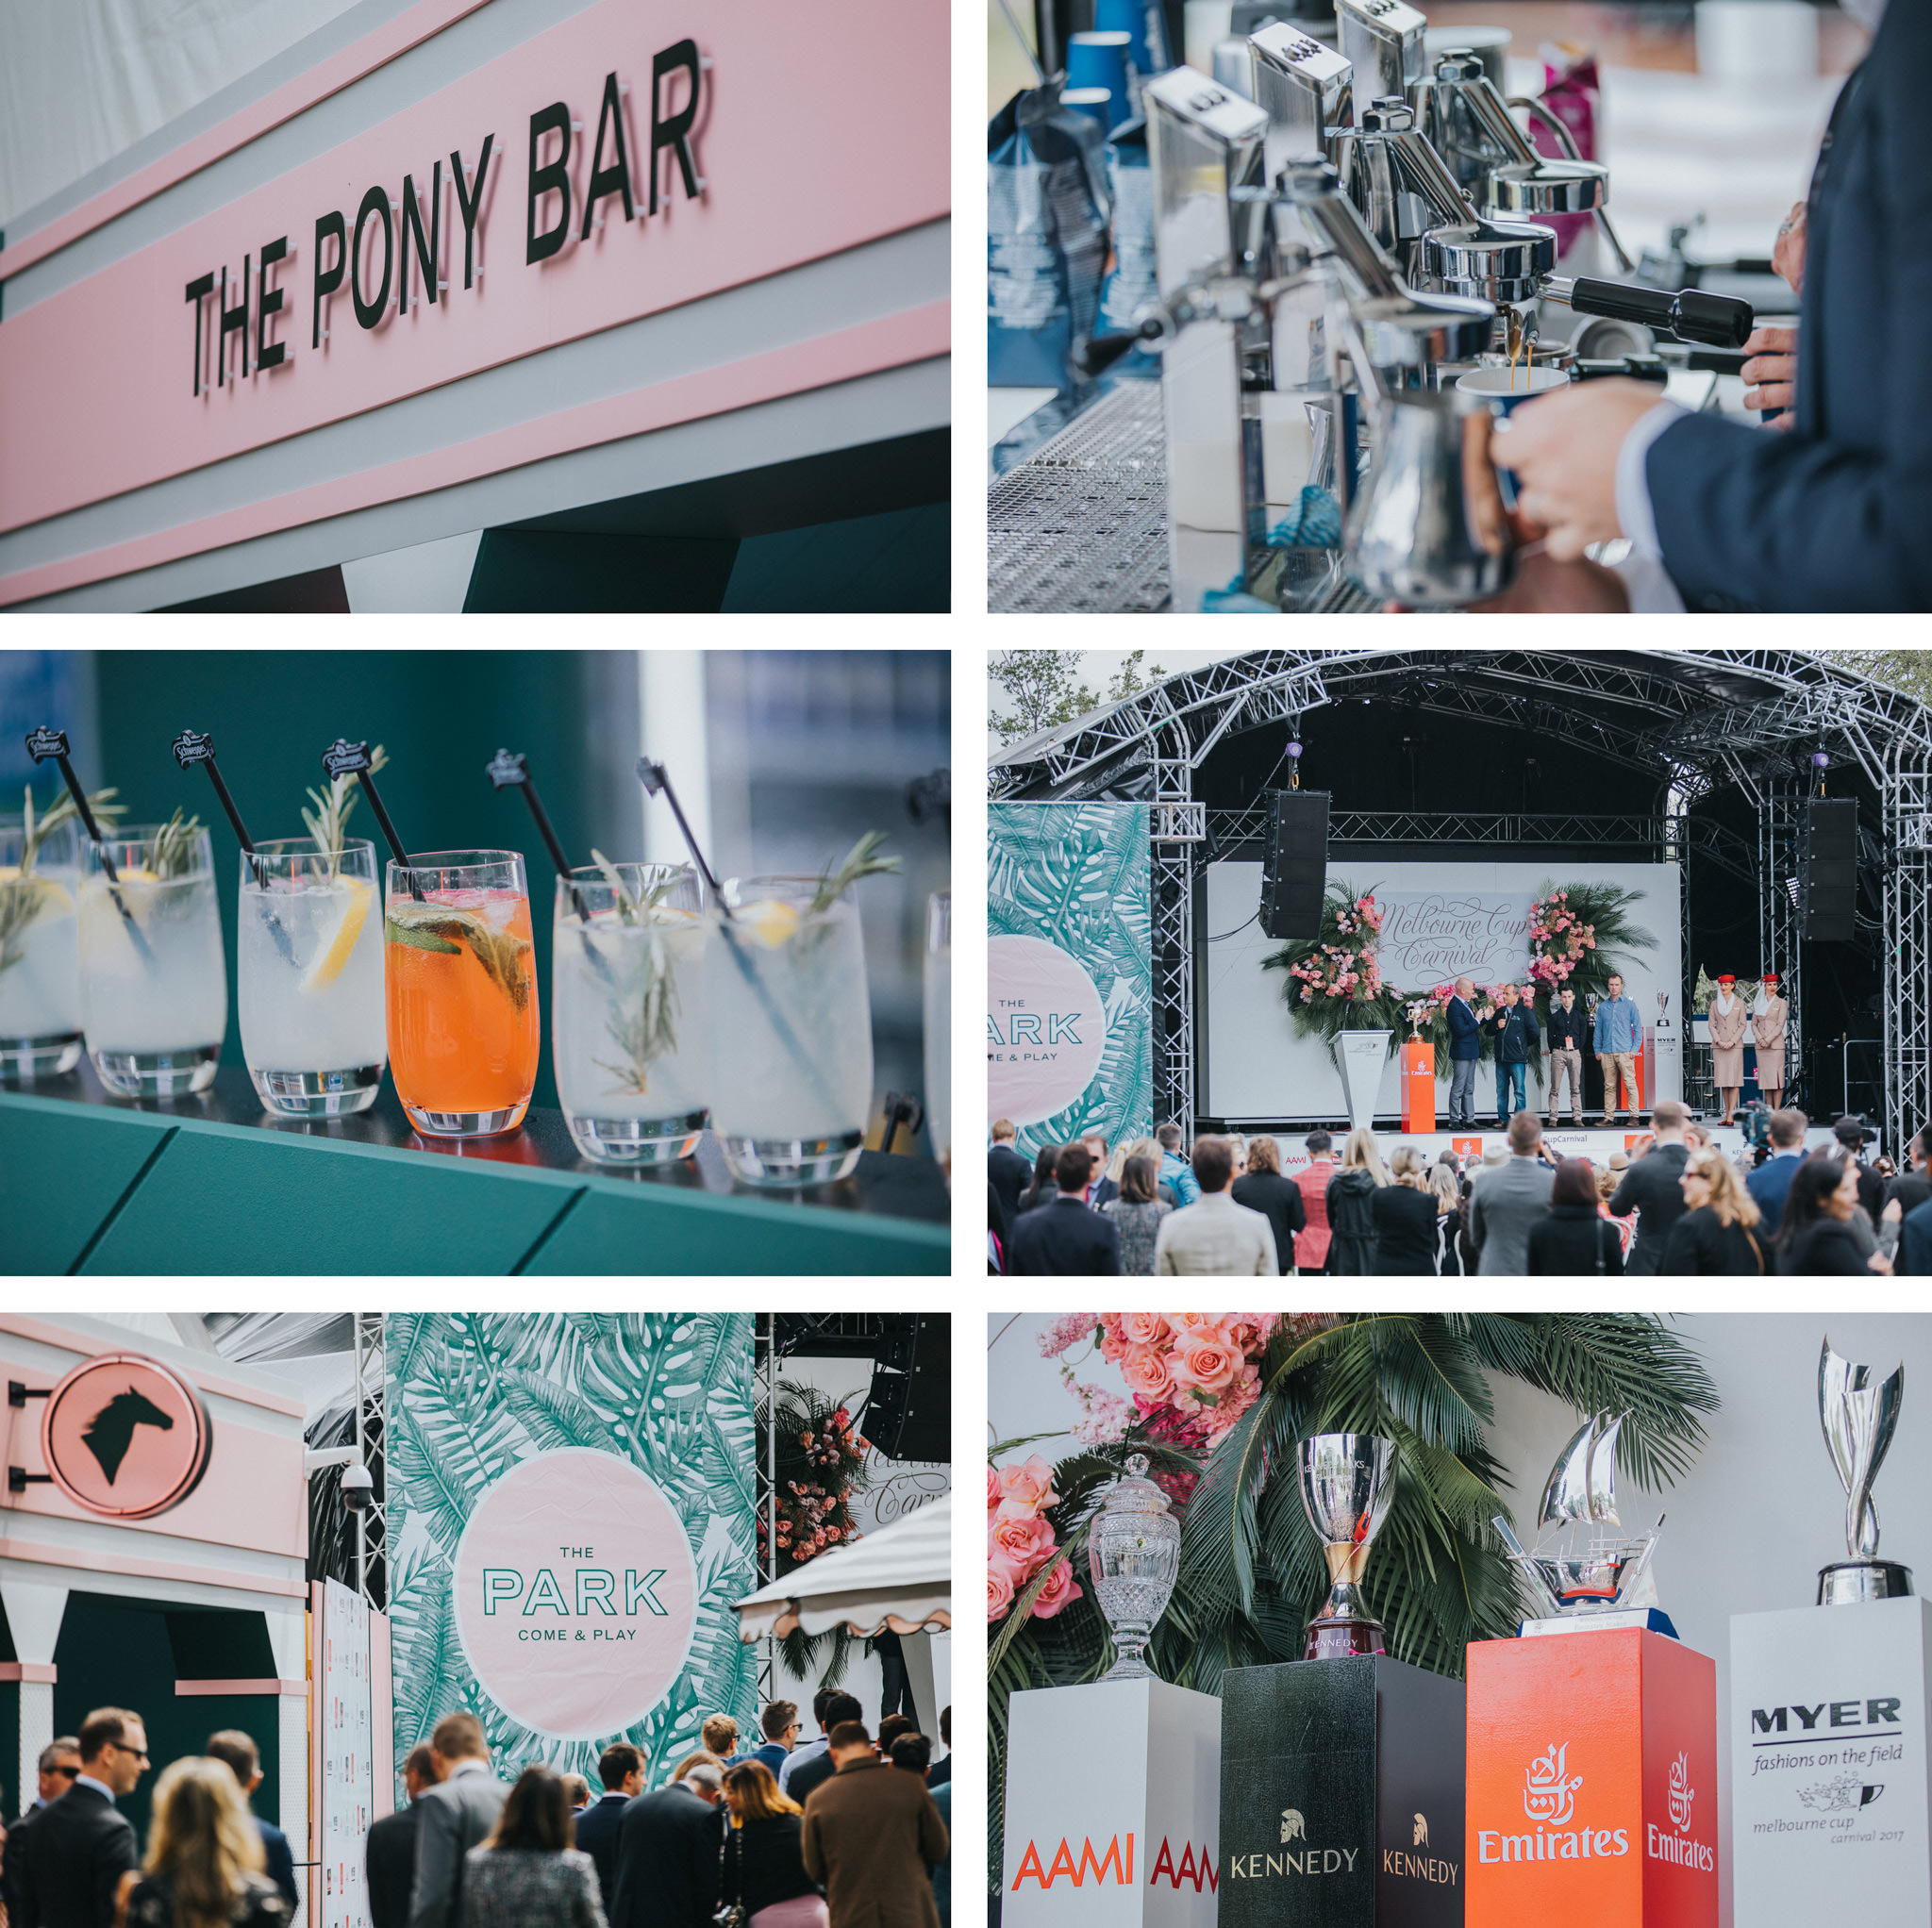 The Pony Bar at Flemington - Spring Racing Carnival Launch